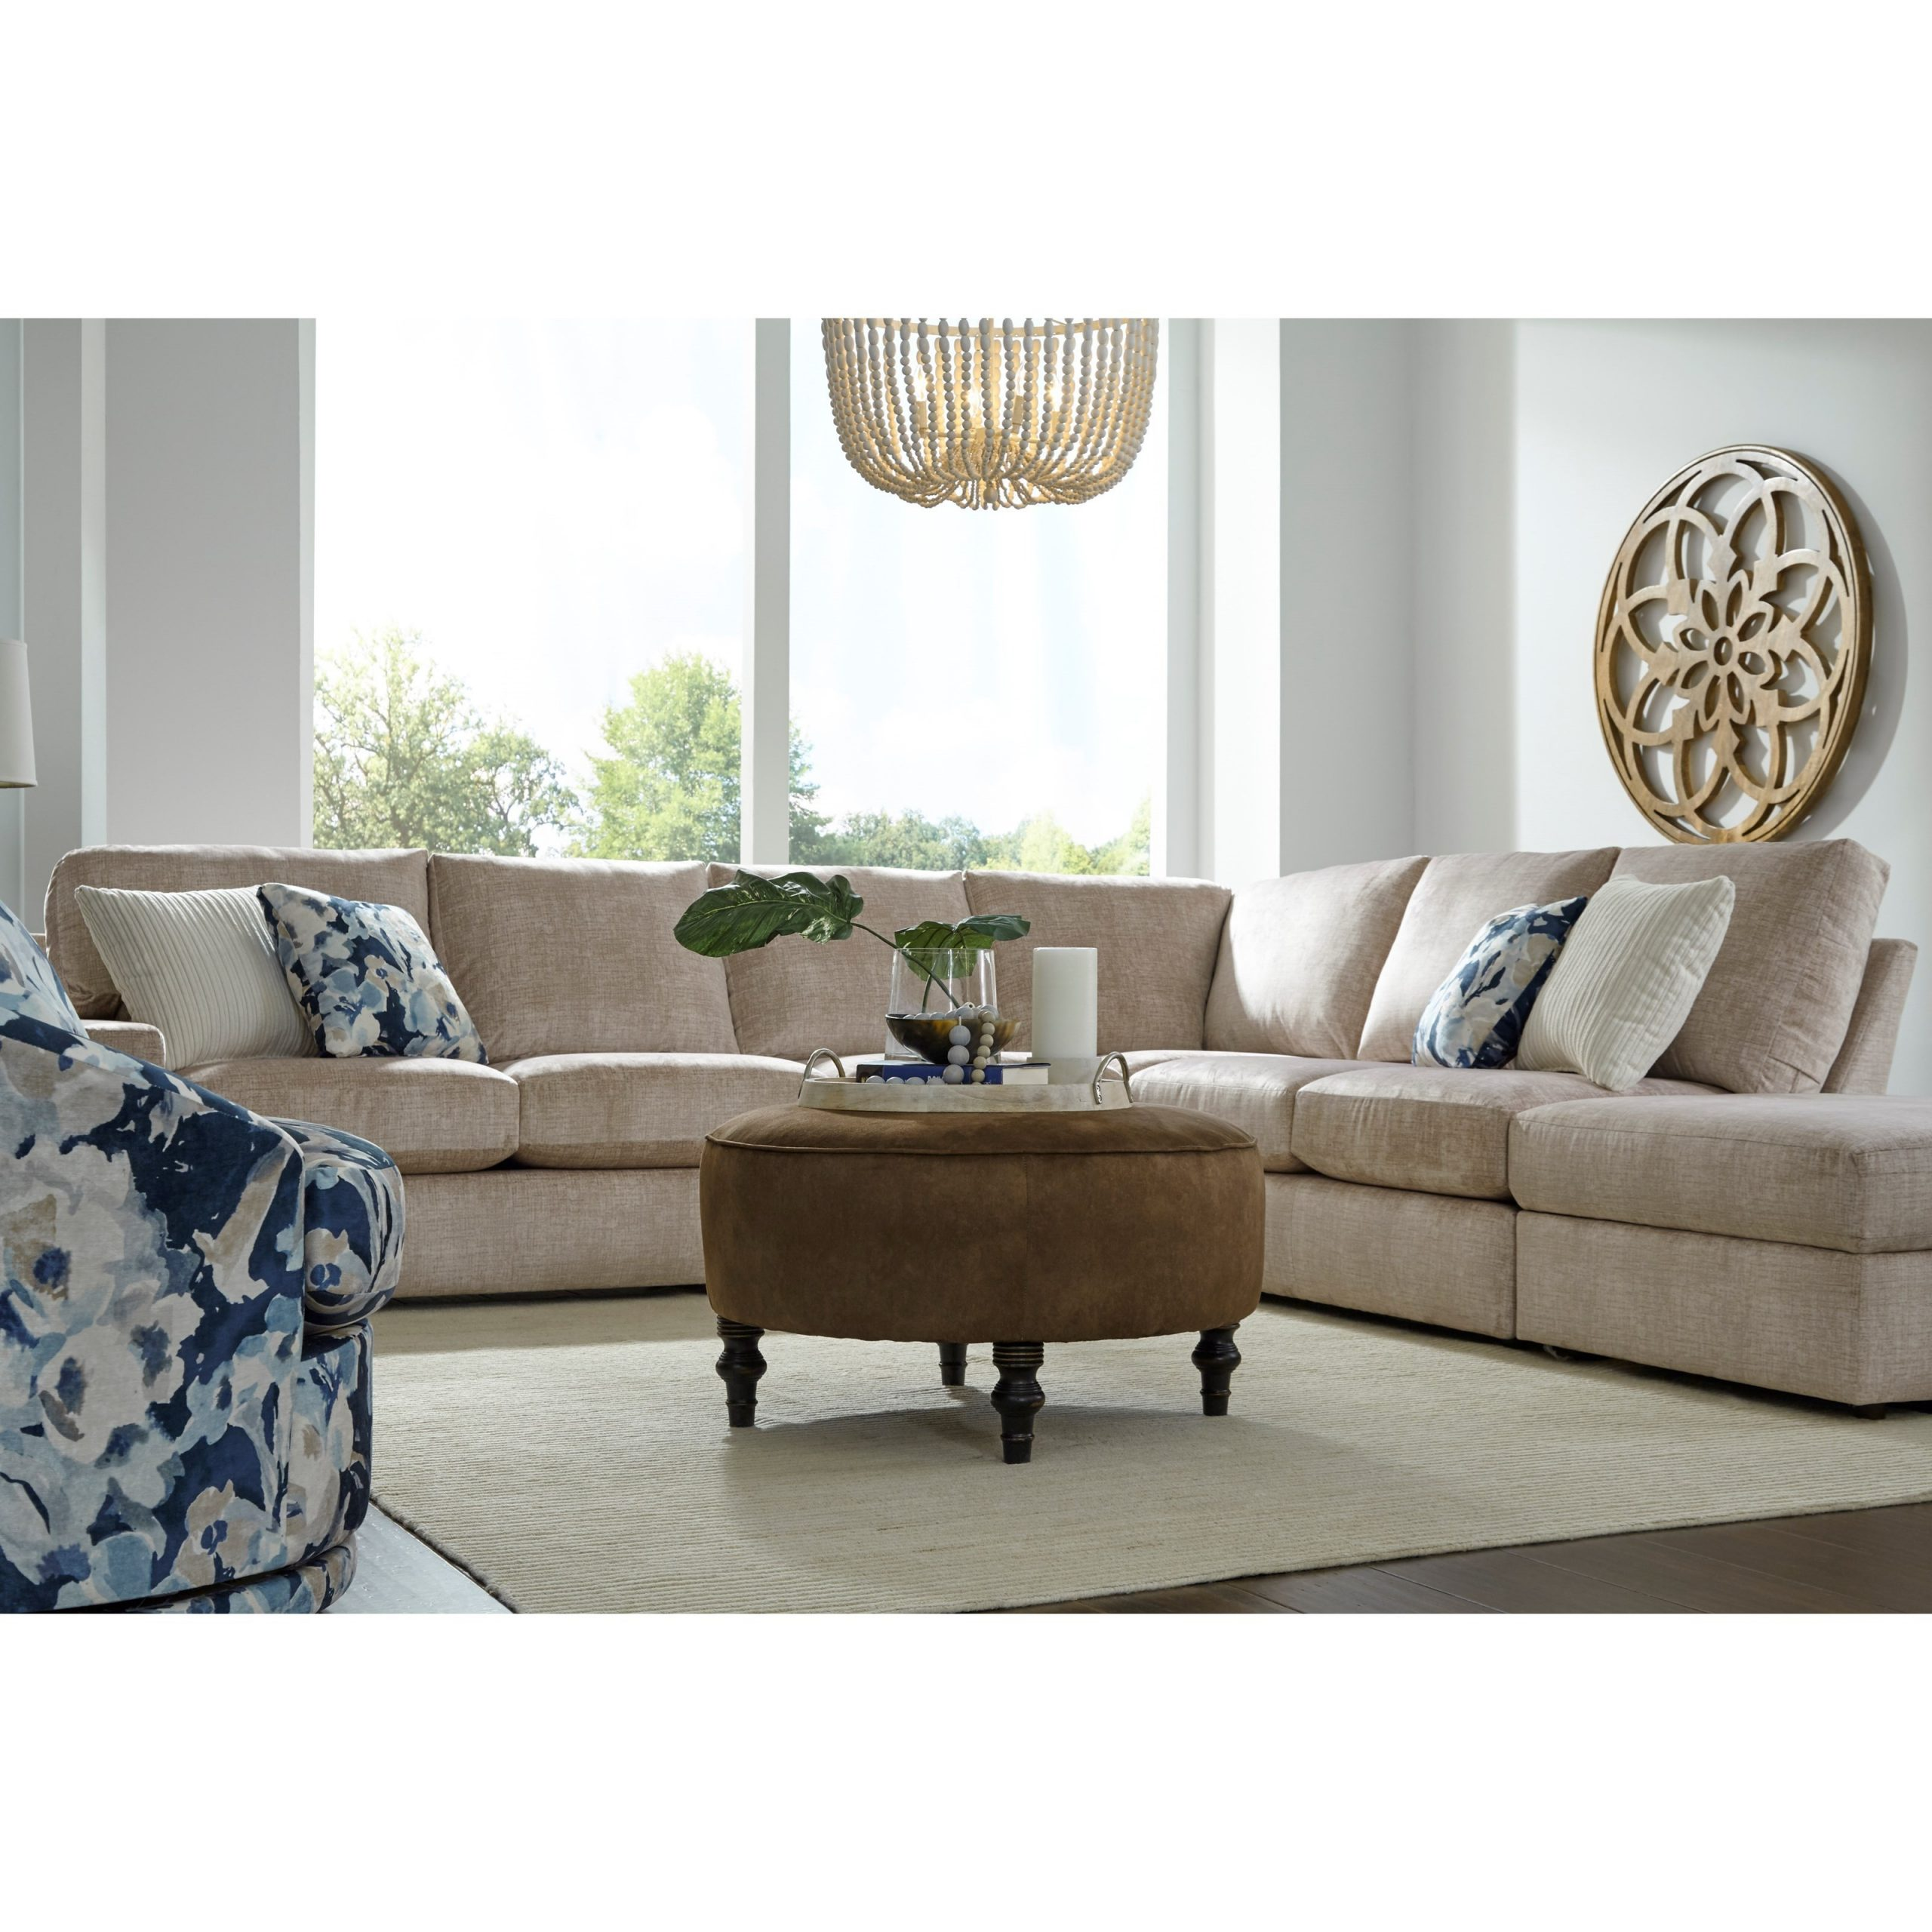 Best Home Furnishings Dovely Casual Five Seat Sectional Inside Copenhagen Reversible Small Space Sectional Sofas With Storage (View 3 of 15)